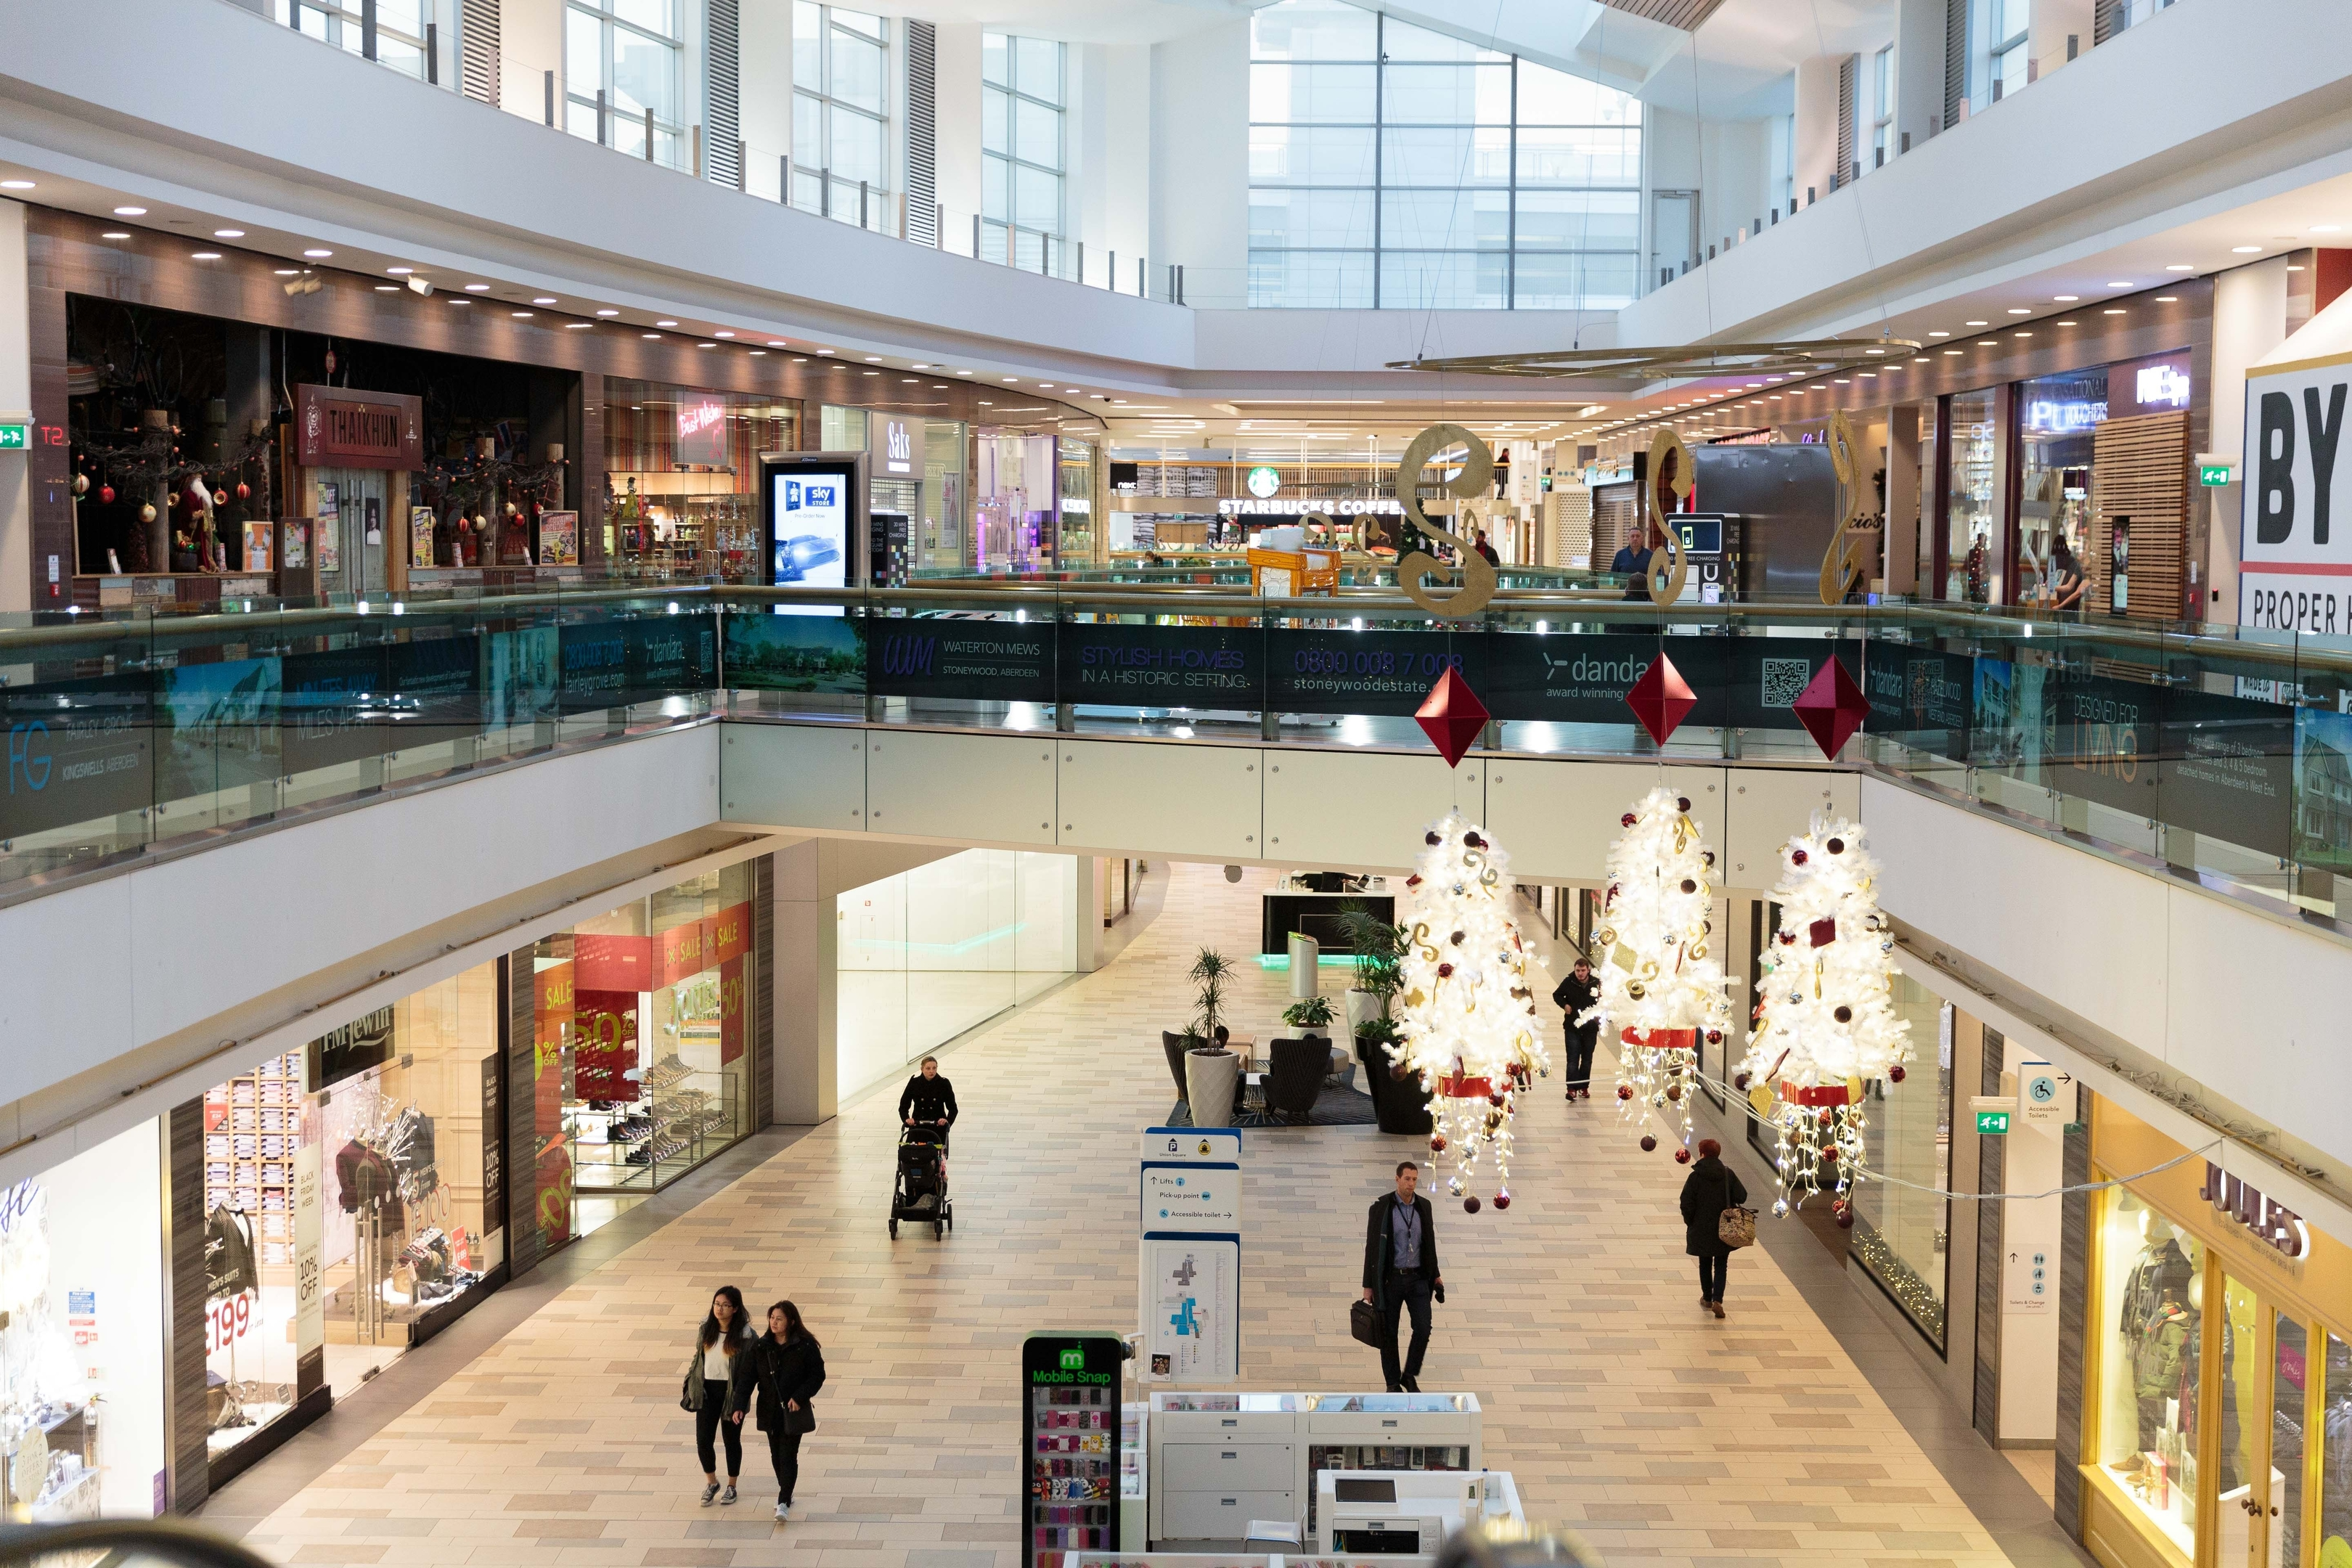 Aberdeen Scotland, Friday 27th November, 2015. - The Black Friday sales have begun, but early signs are that UK stores have seen smaller crowds than last year as sales switch online. Pictured: Union Square in Aberdeen looking empty.